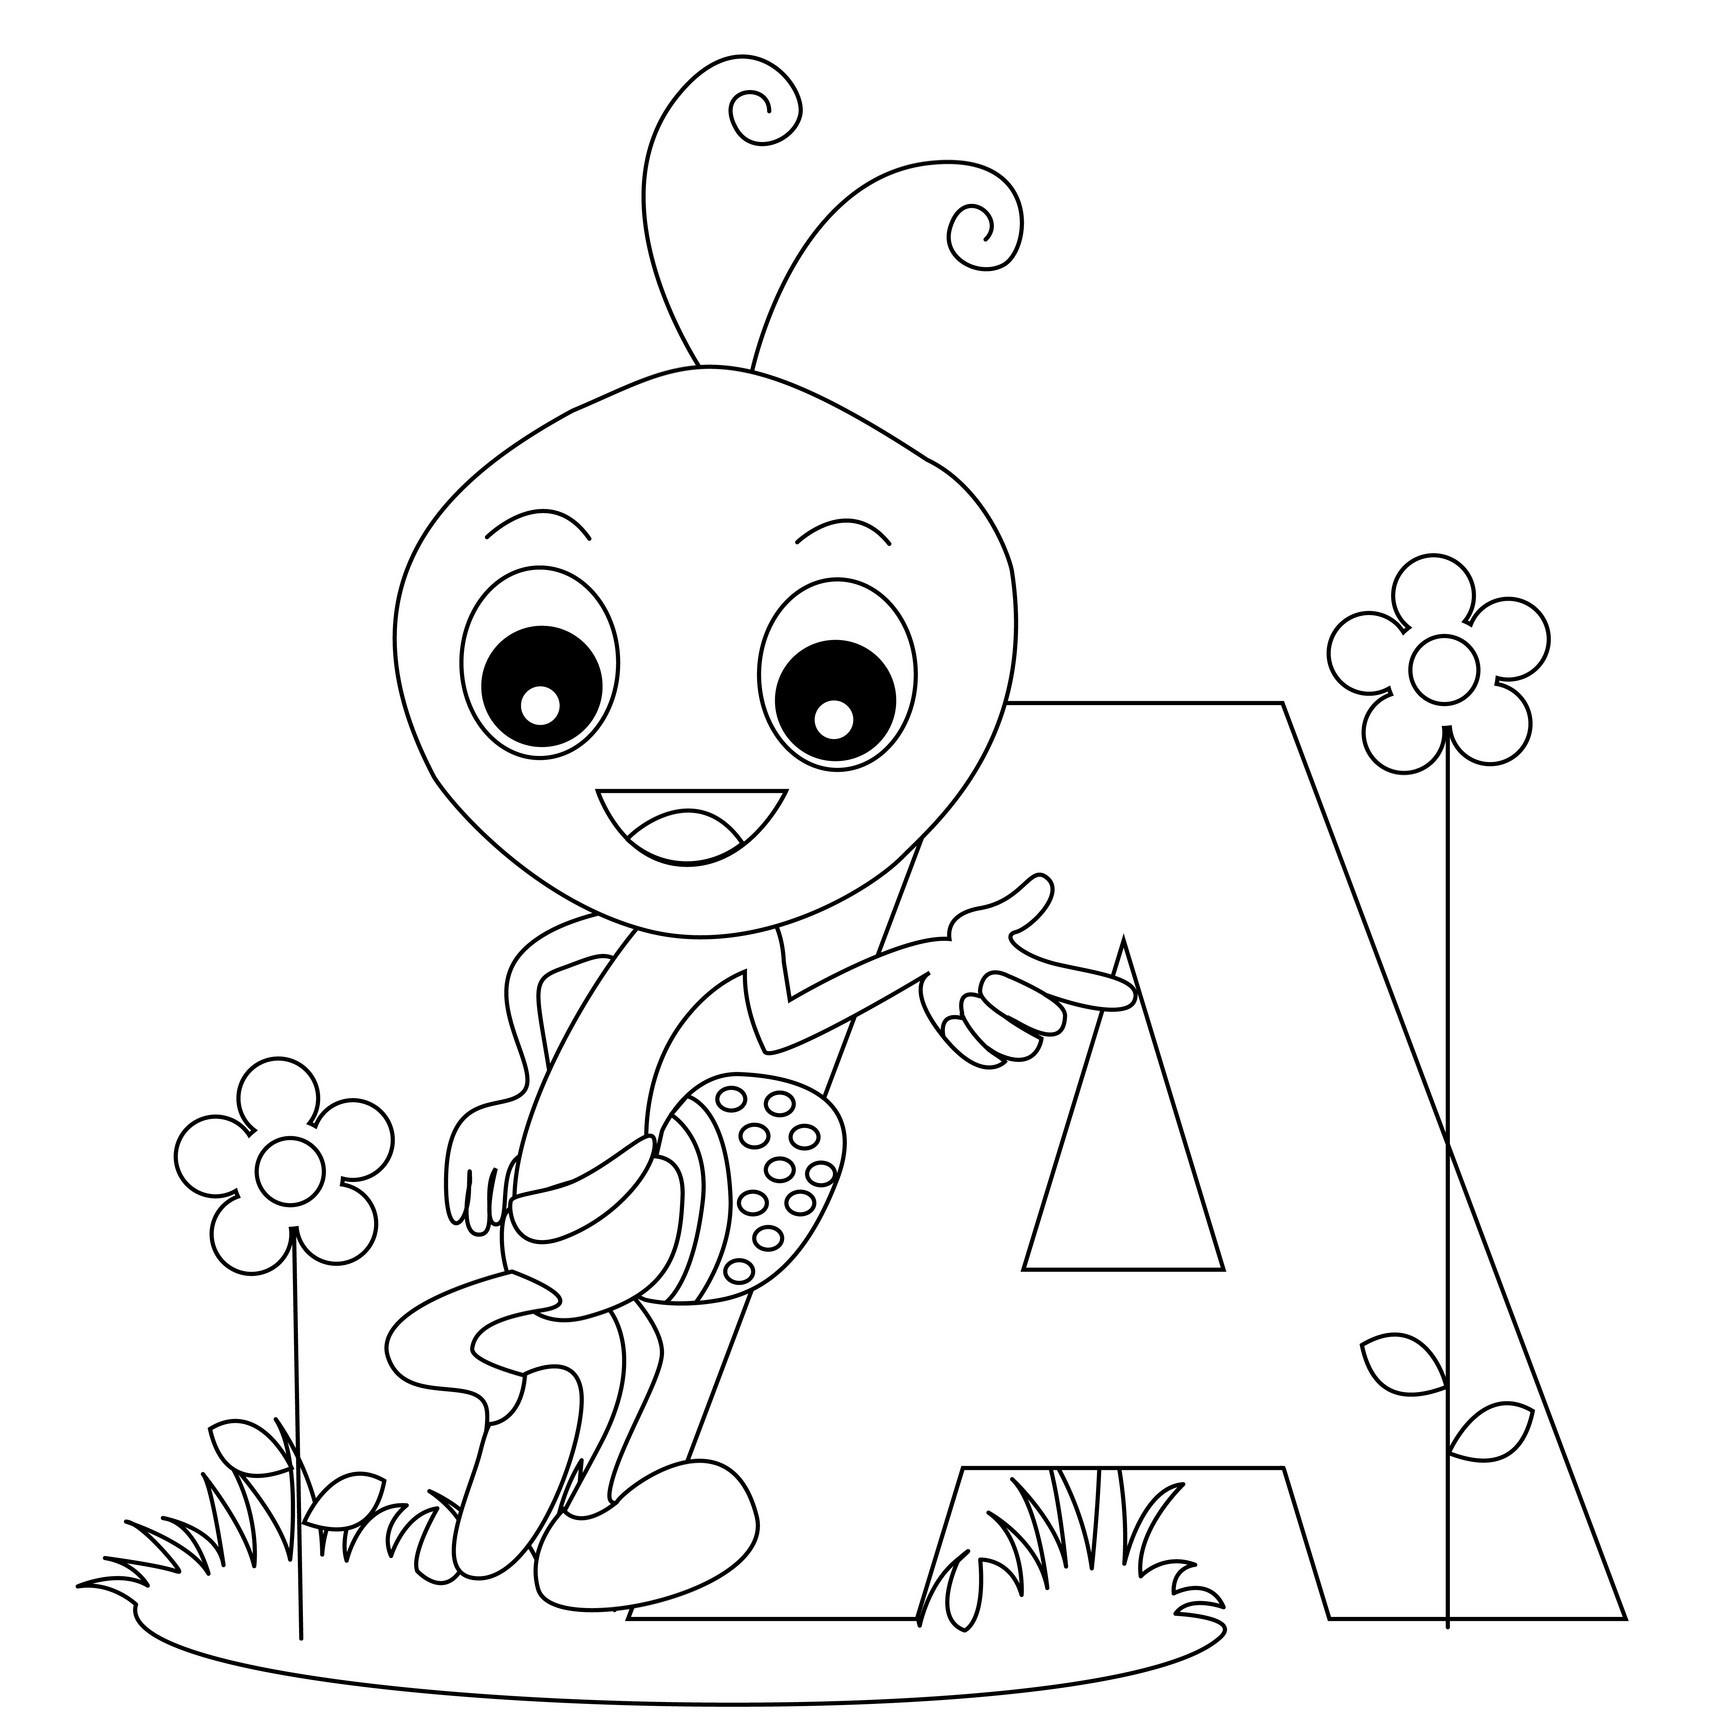 alphabet letters coloring pages n - photo#37